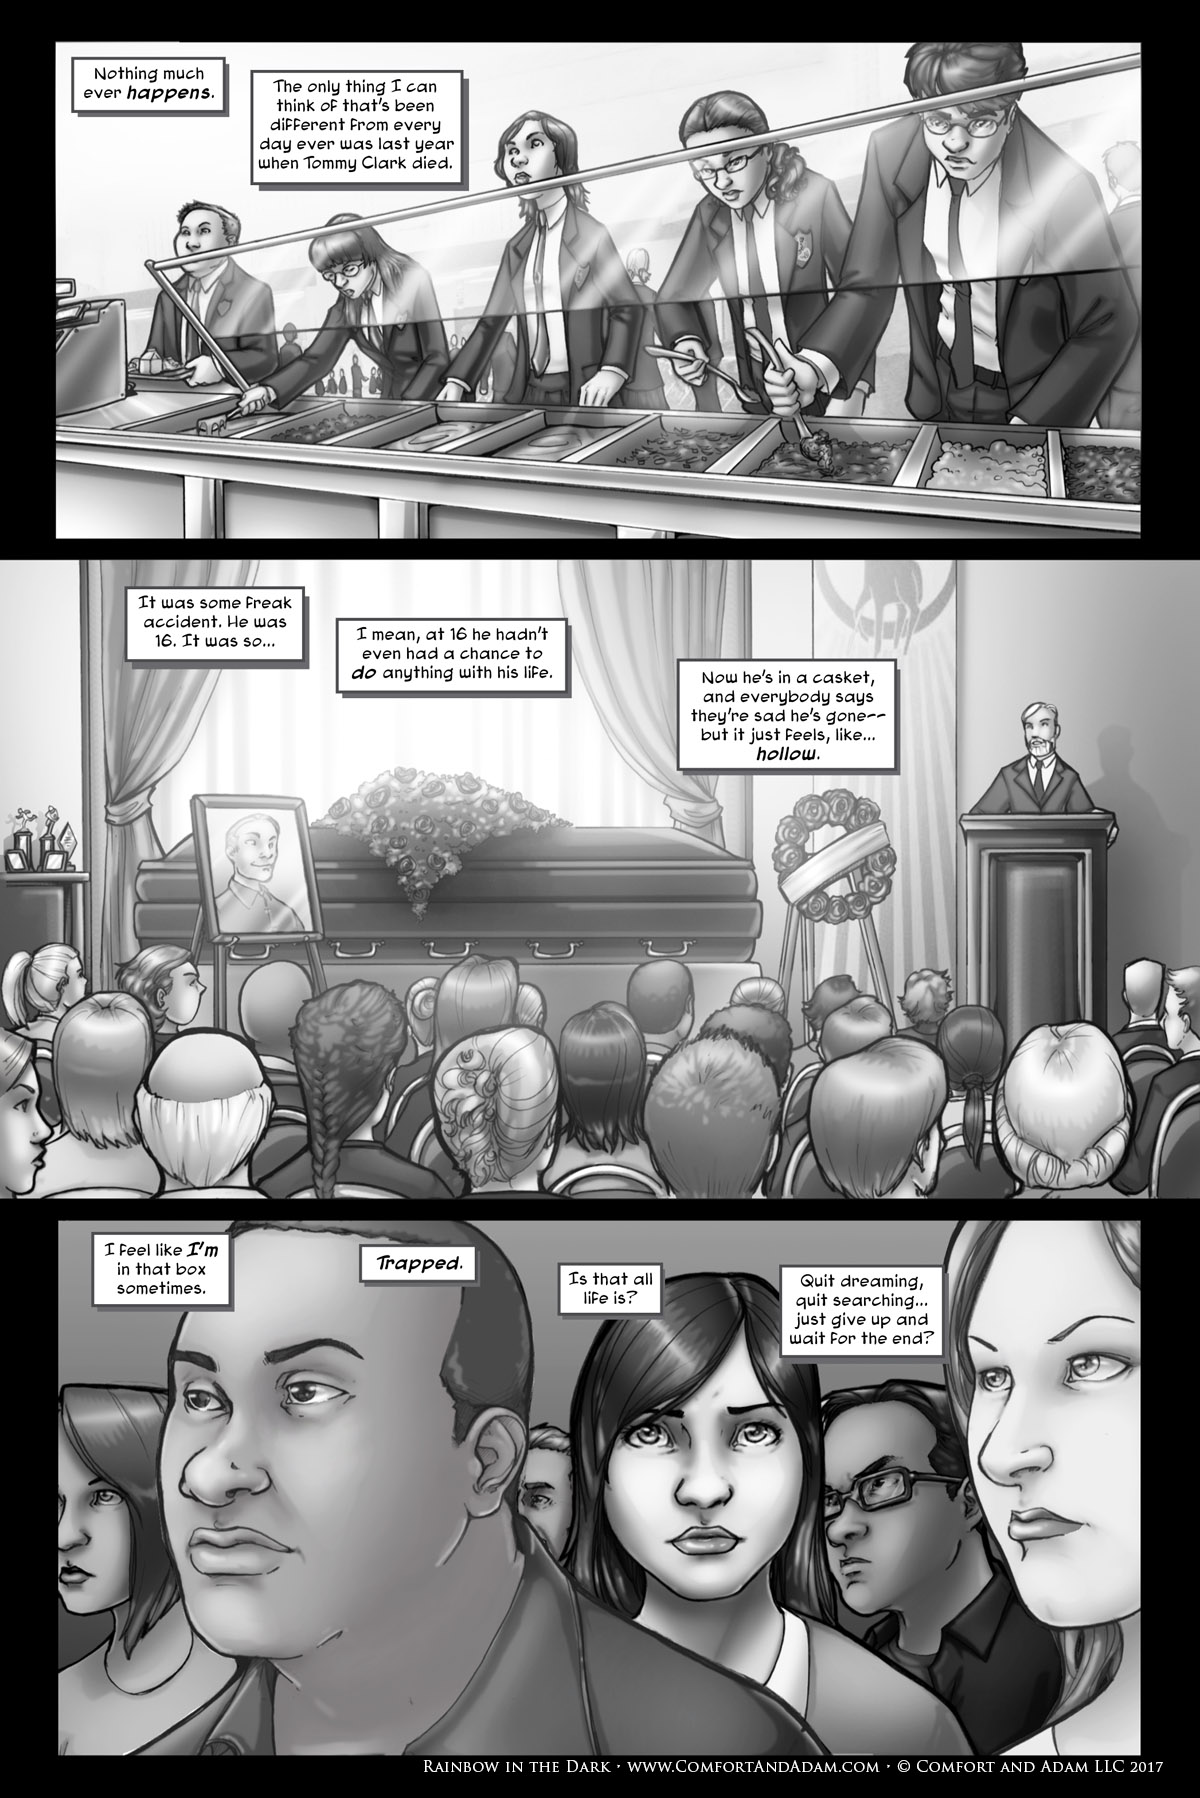 Rainbow in the Dark #1, pg. 4: Memory of a Funeral